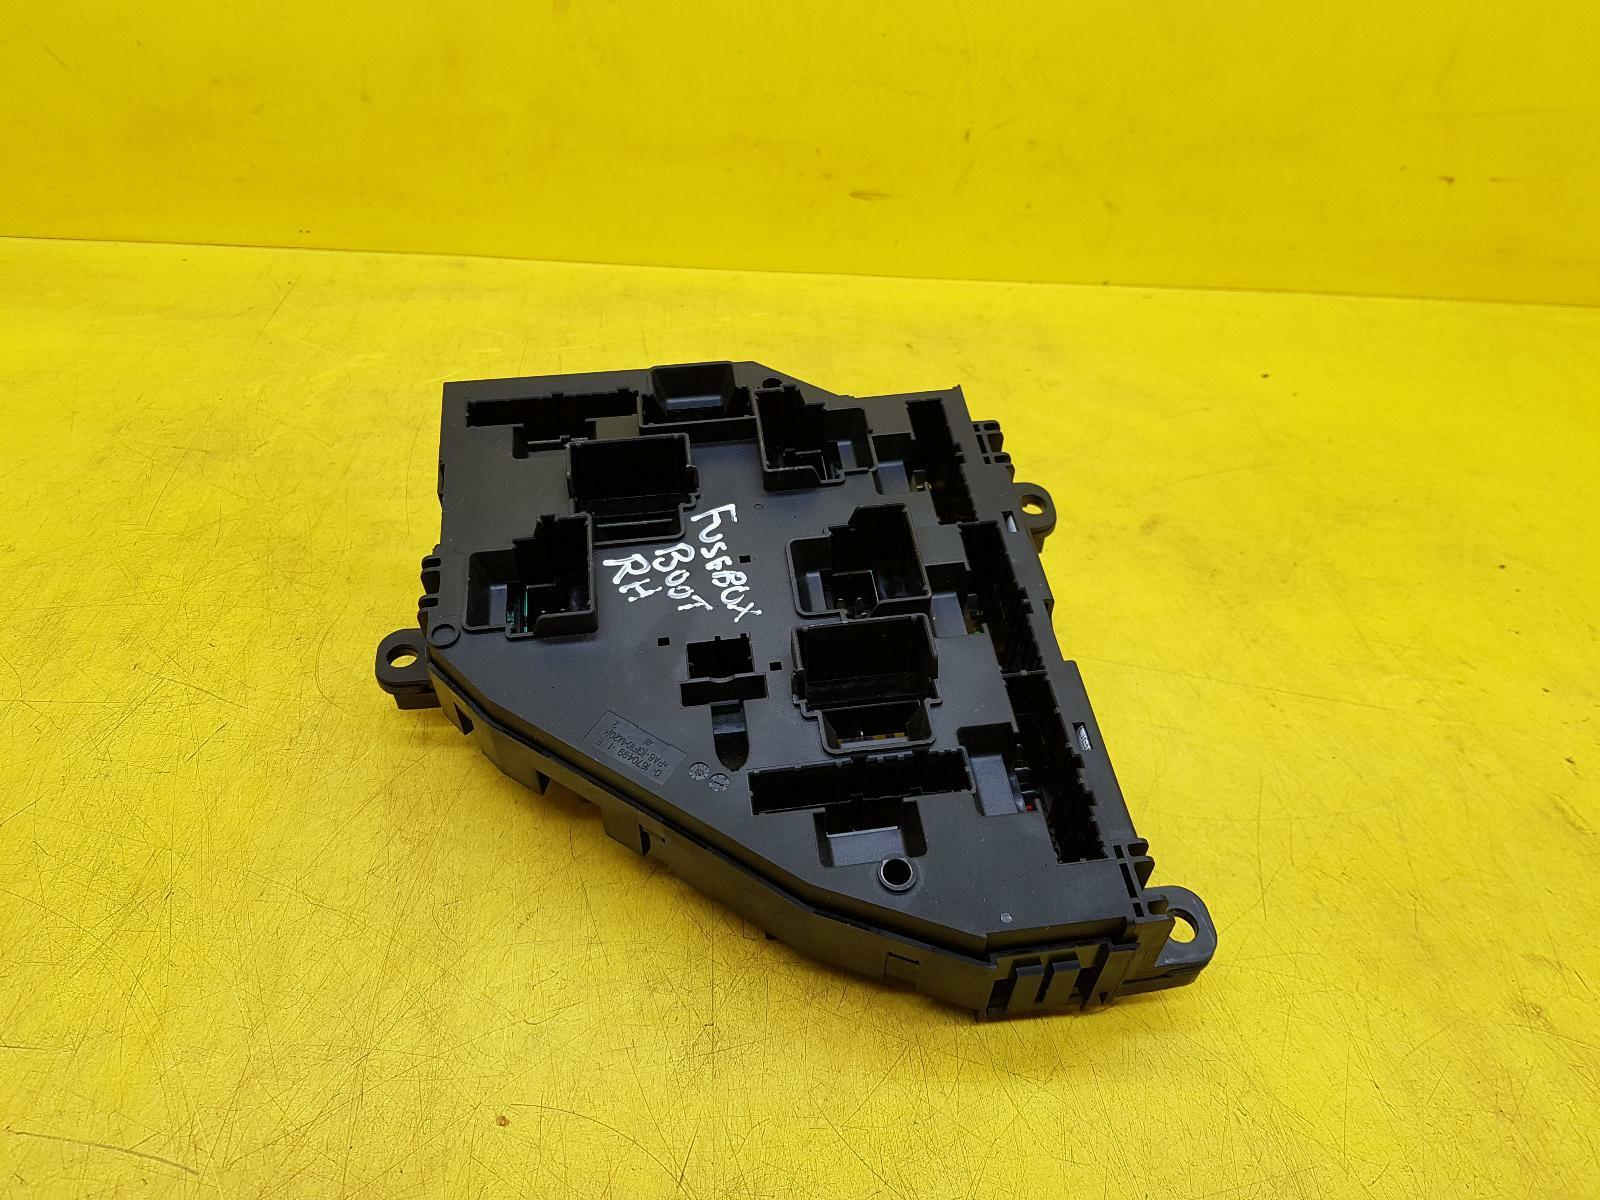 2013 Bmw 5 Series M5 F10 Rear Fuse Box 9264923 01 3000 Picclick Uk 1 Of 4only Available